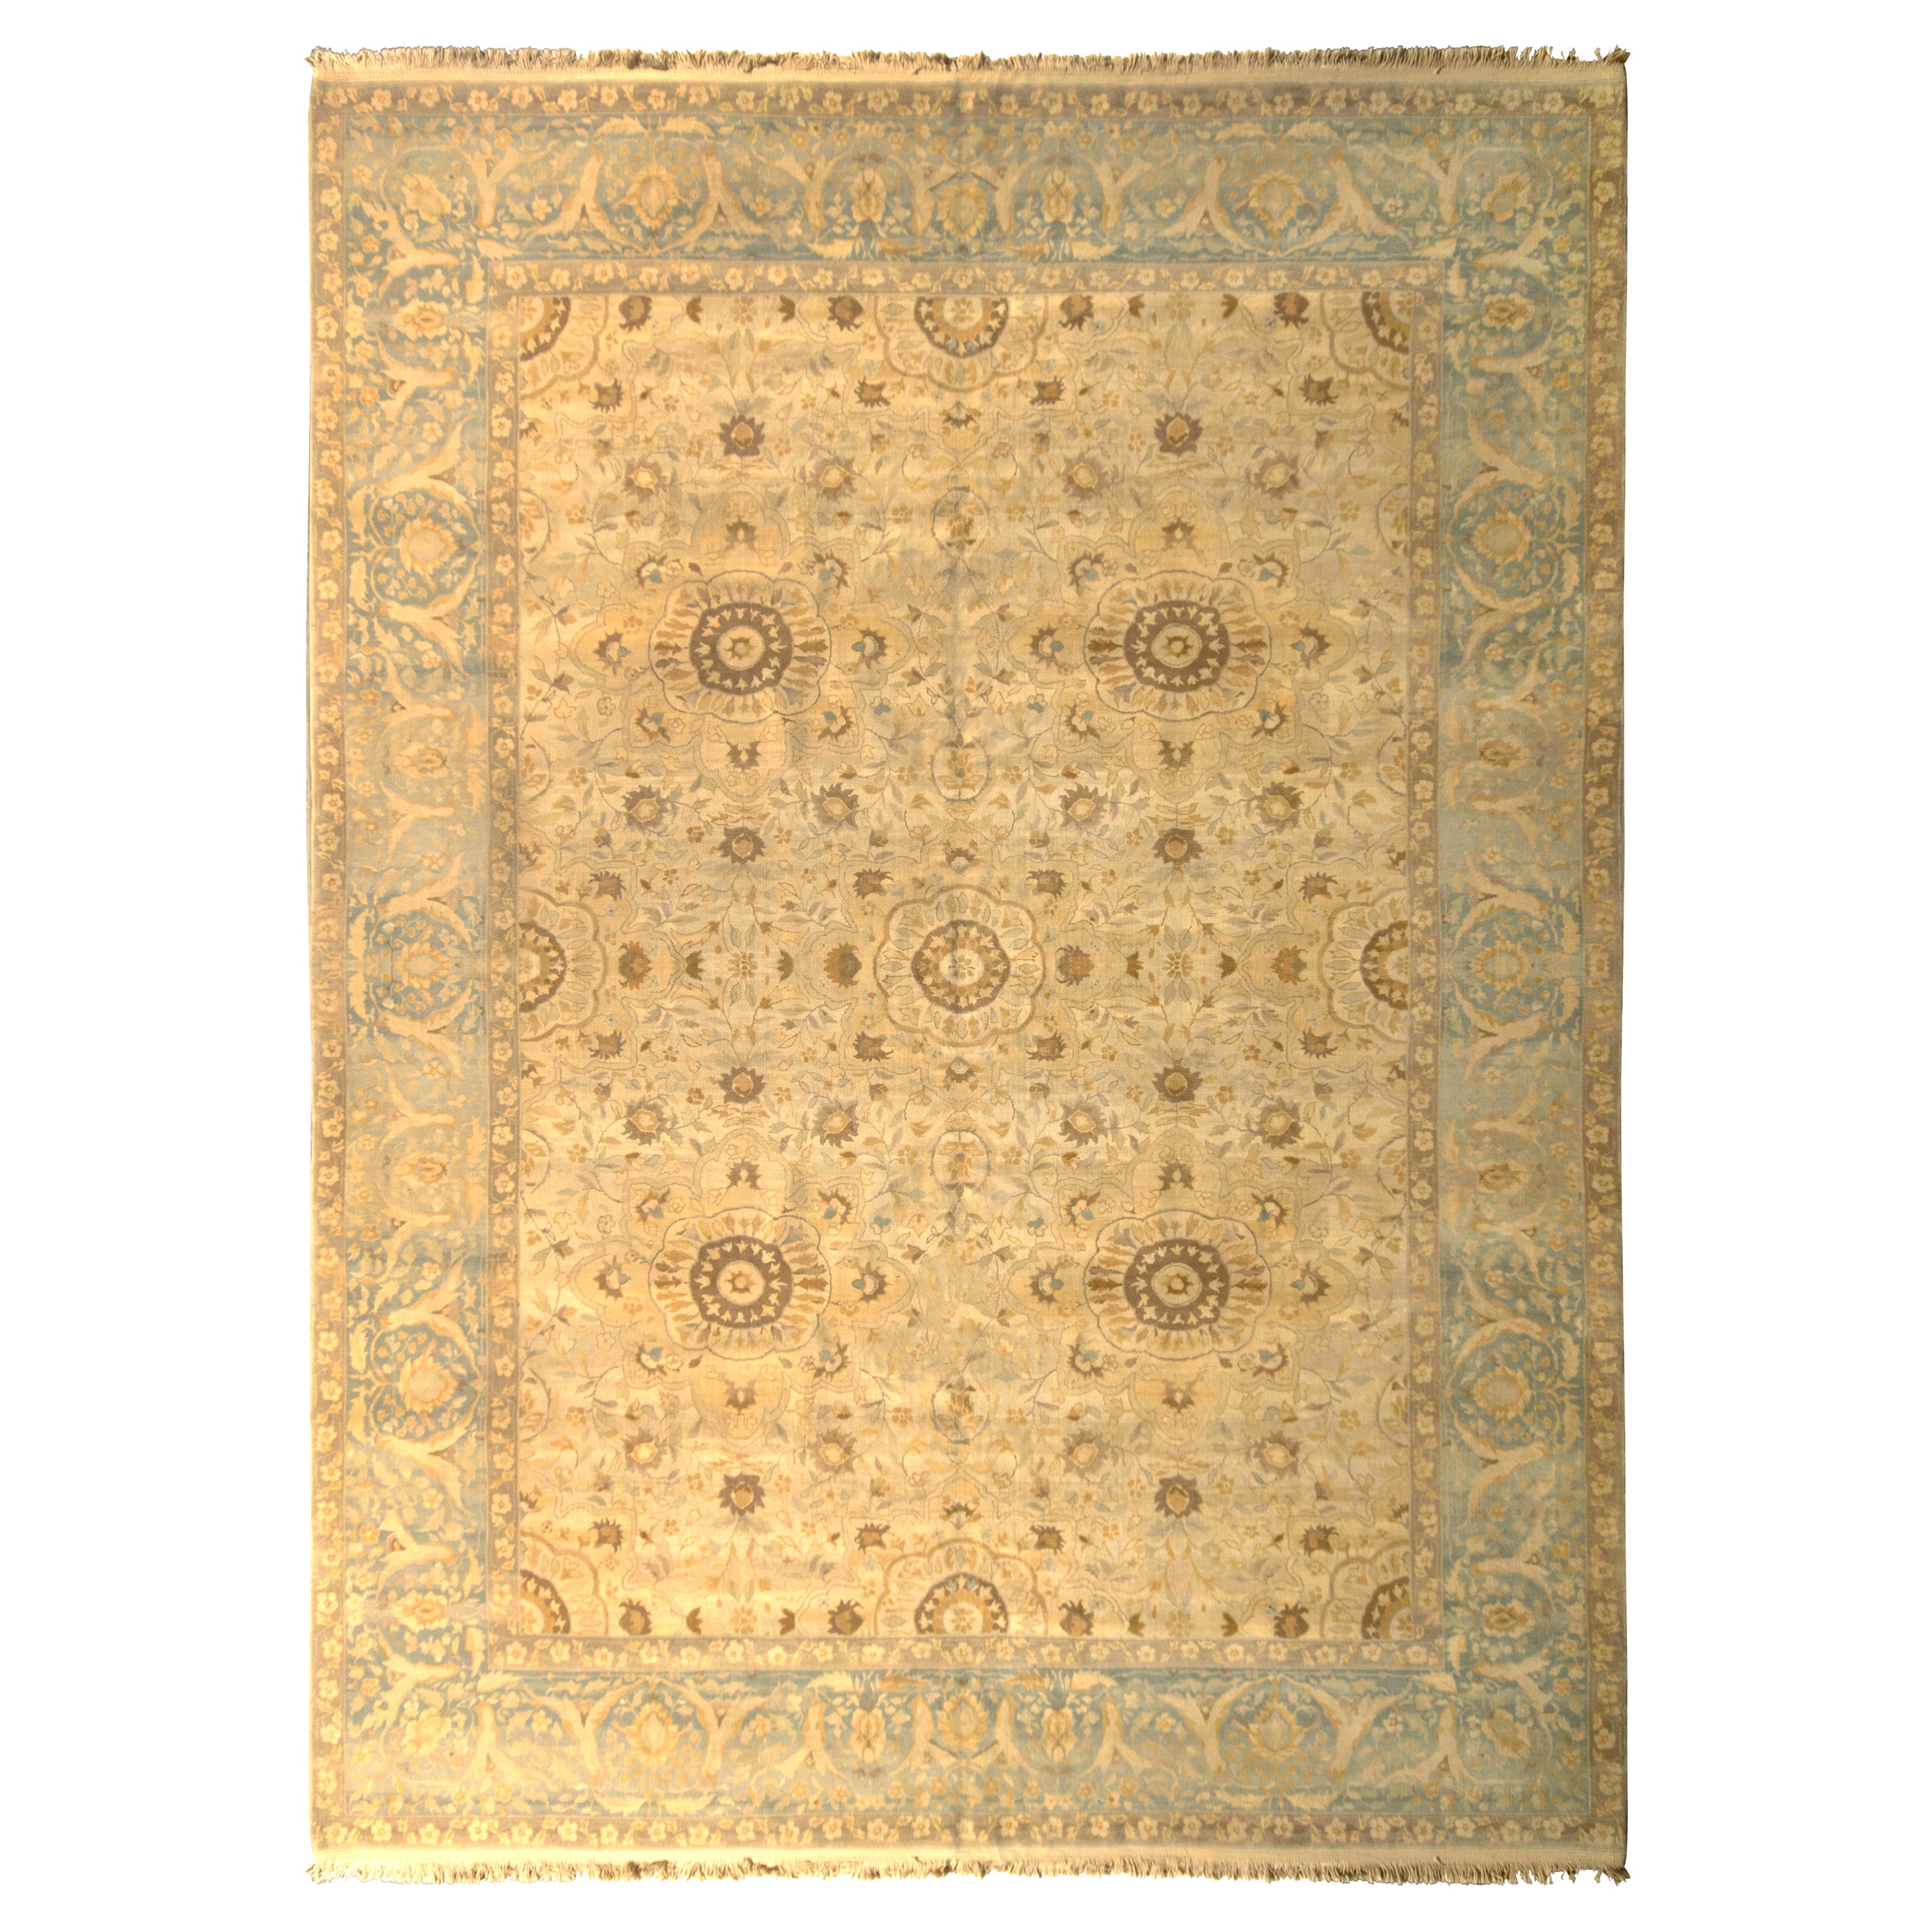 Sultanabad Style Rug Beige Blue Classic Floral Pattern by Rug & Kilim